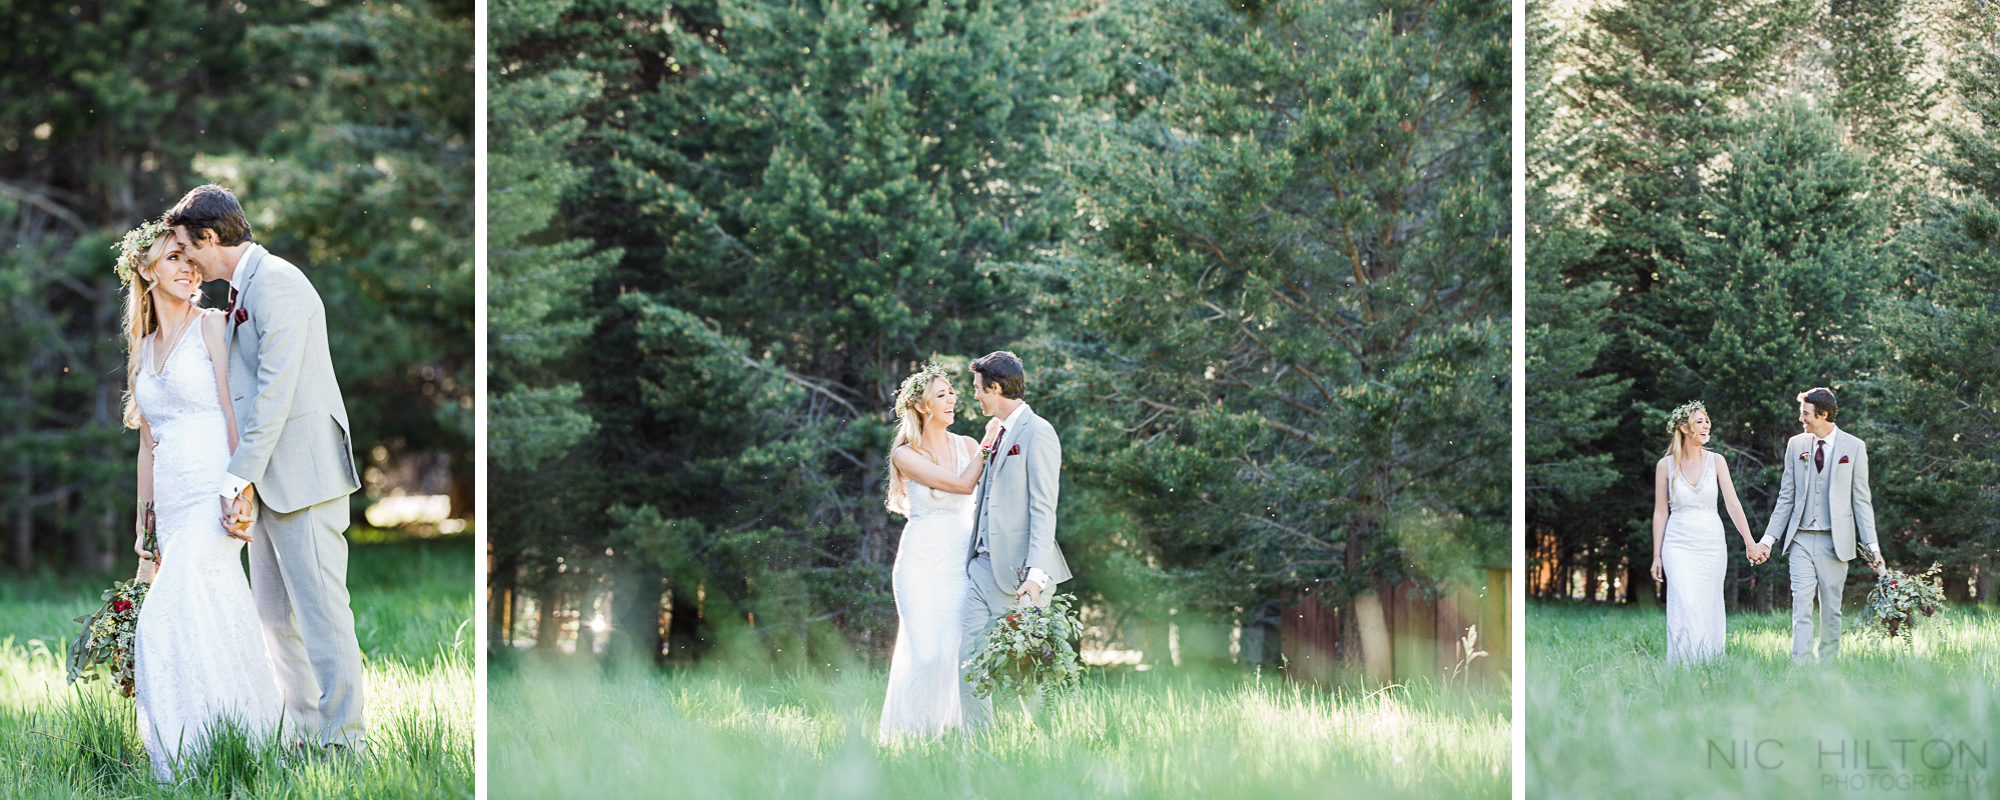 Bride-and-Groom-Photography-Double-Eagle.jpg